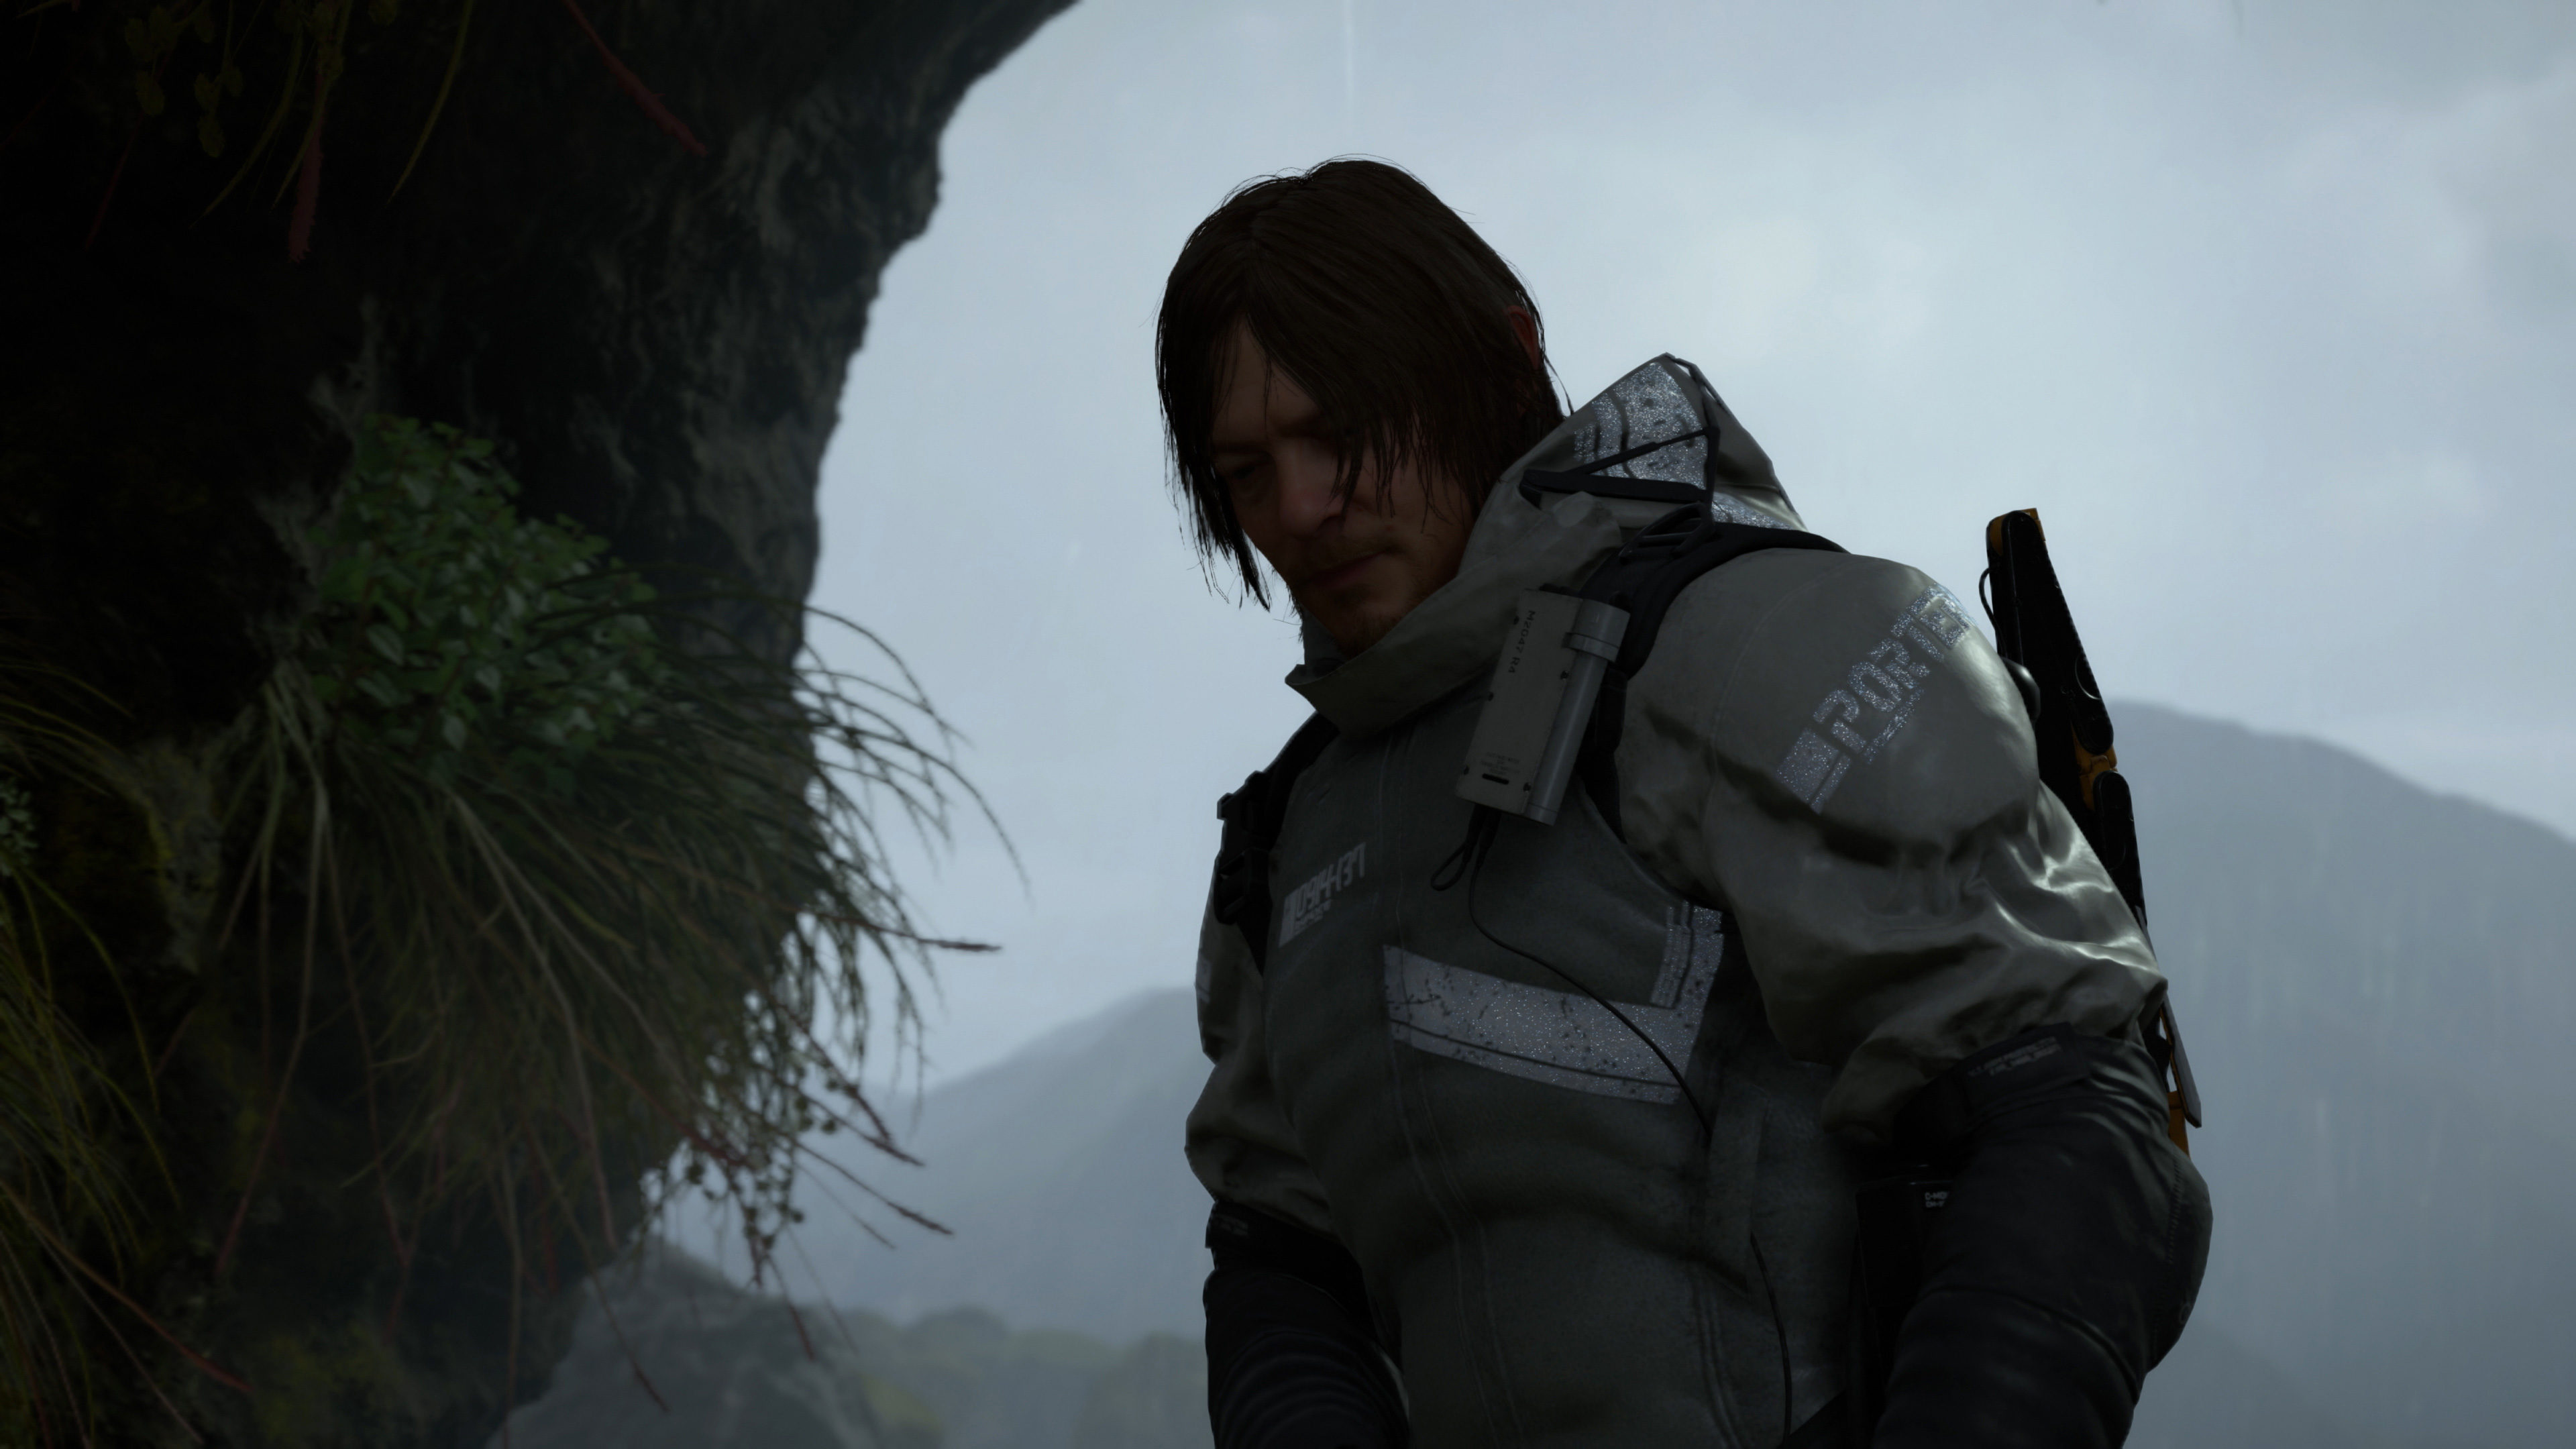 https://www.metalgearinformer.com/wp-content/uploads/2018/06/Death-Stranding-E3-2018-2.jpg